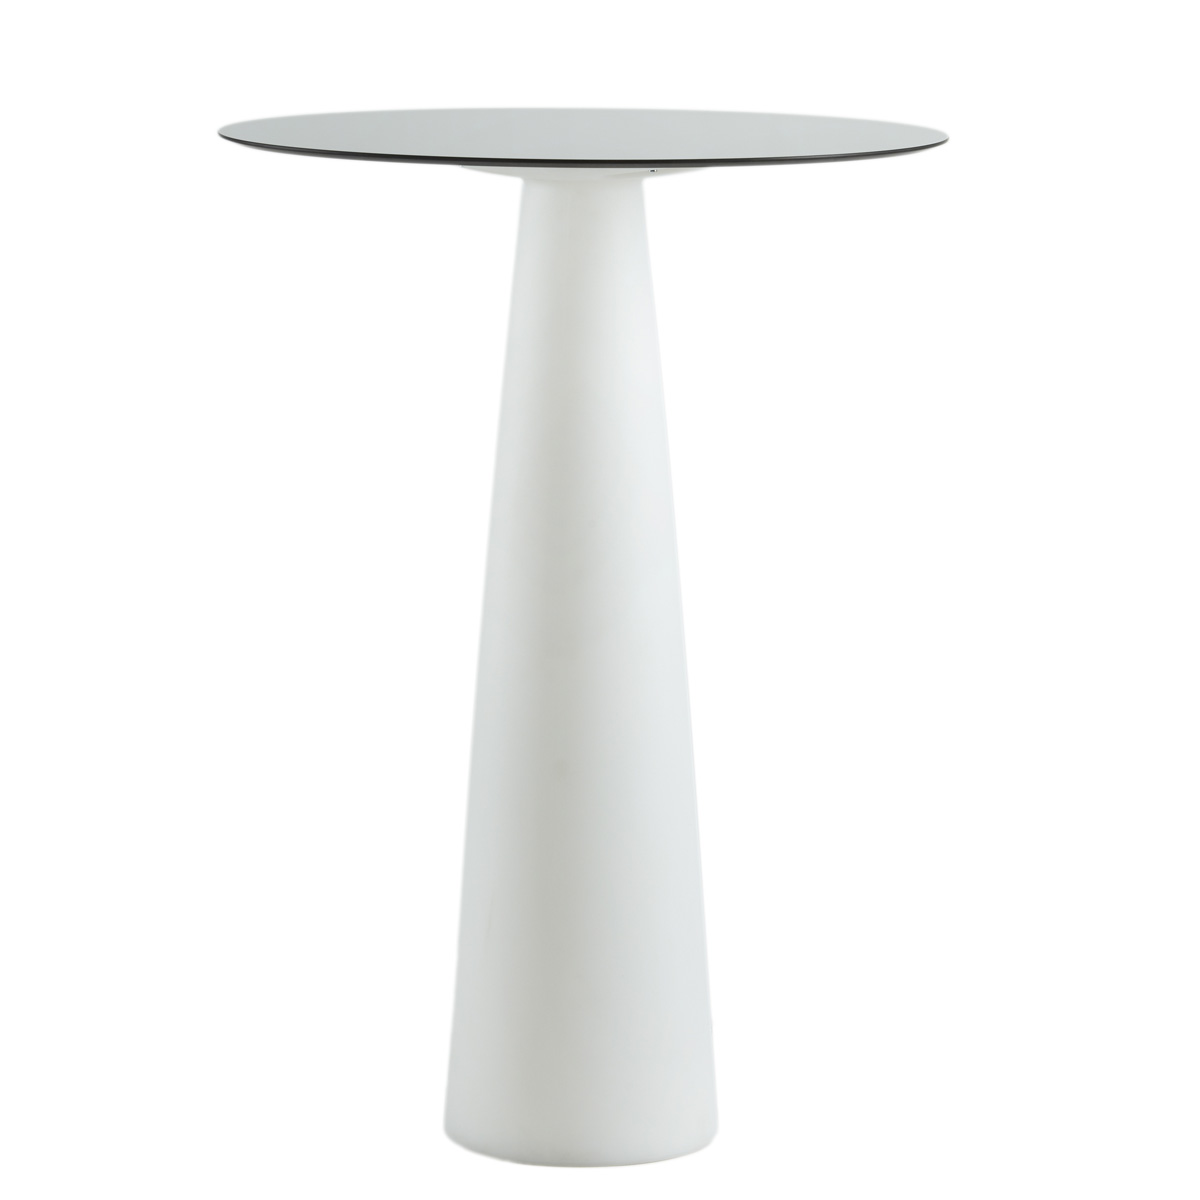 Hopla Round bar table from Slide